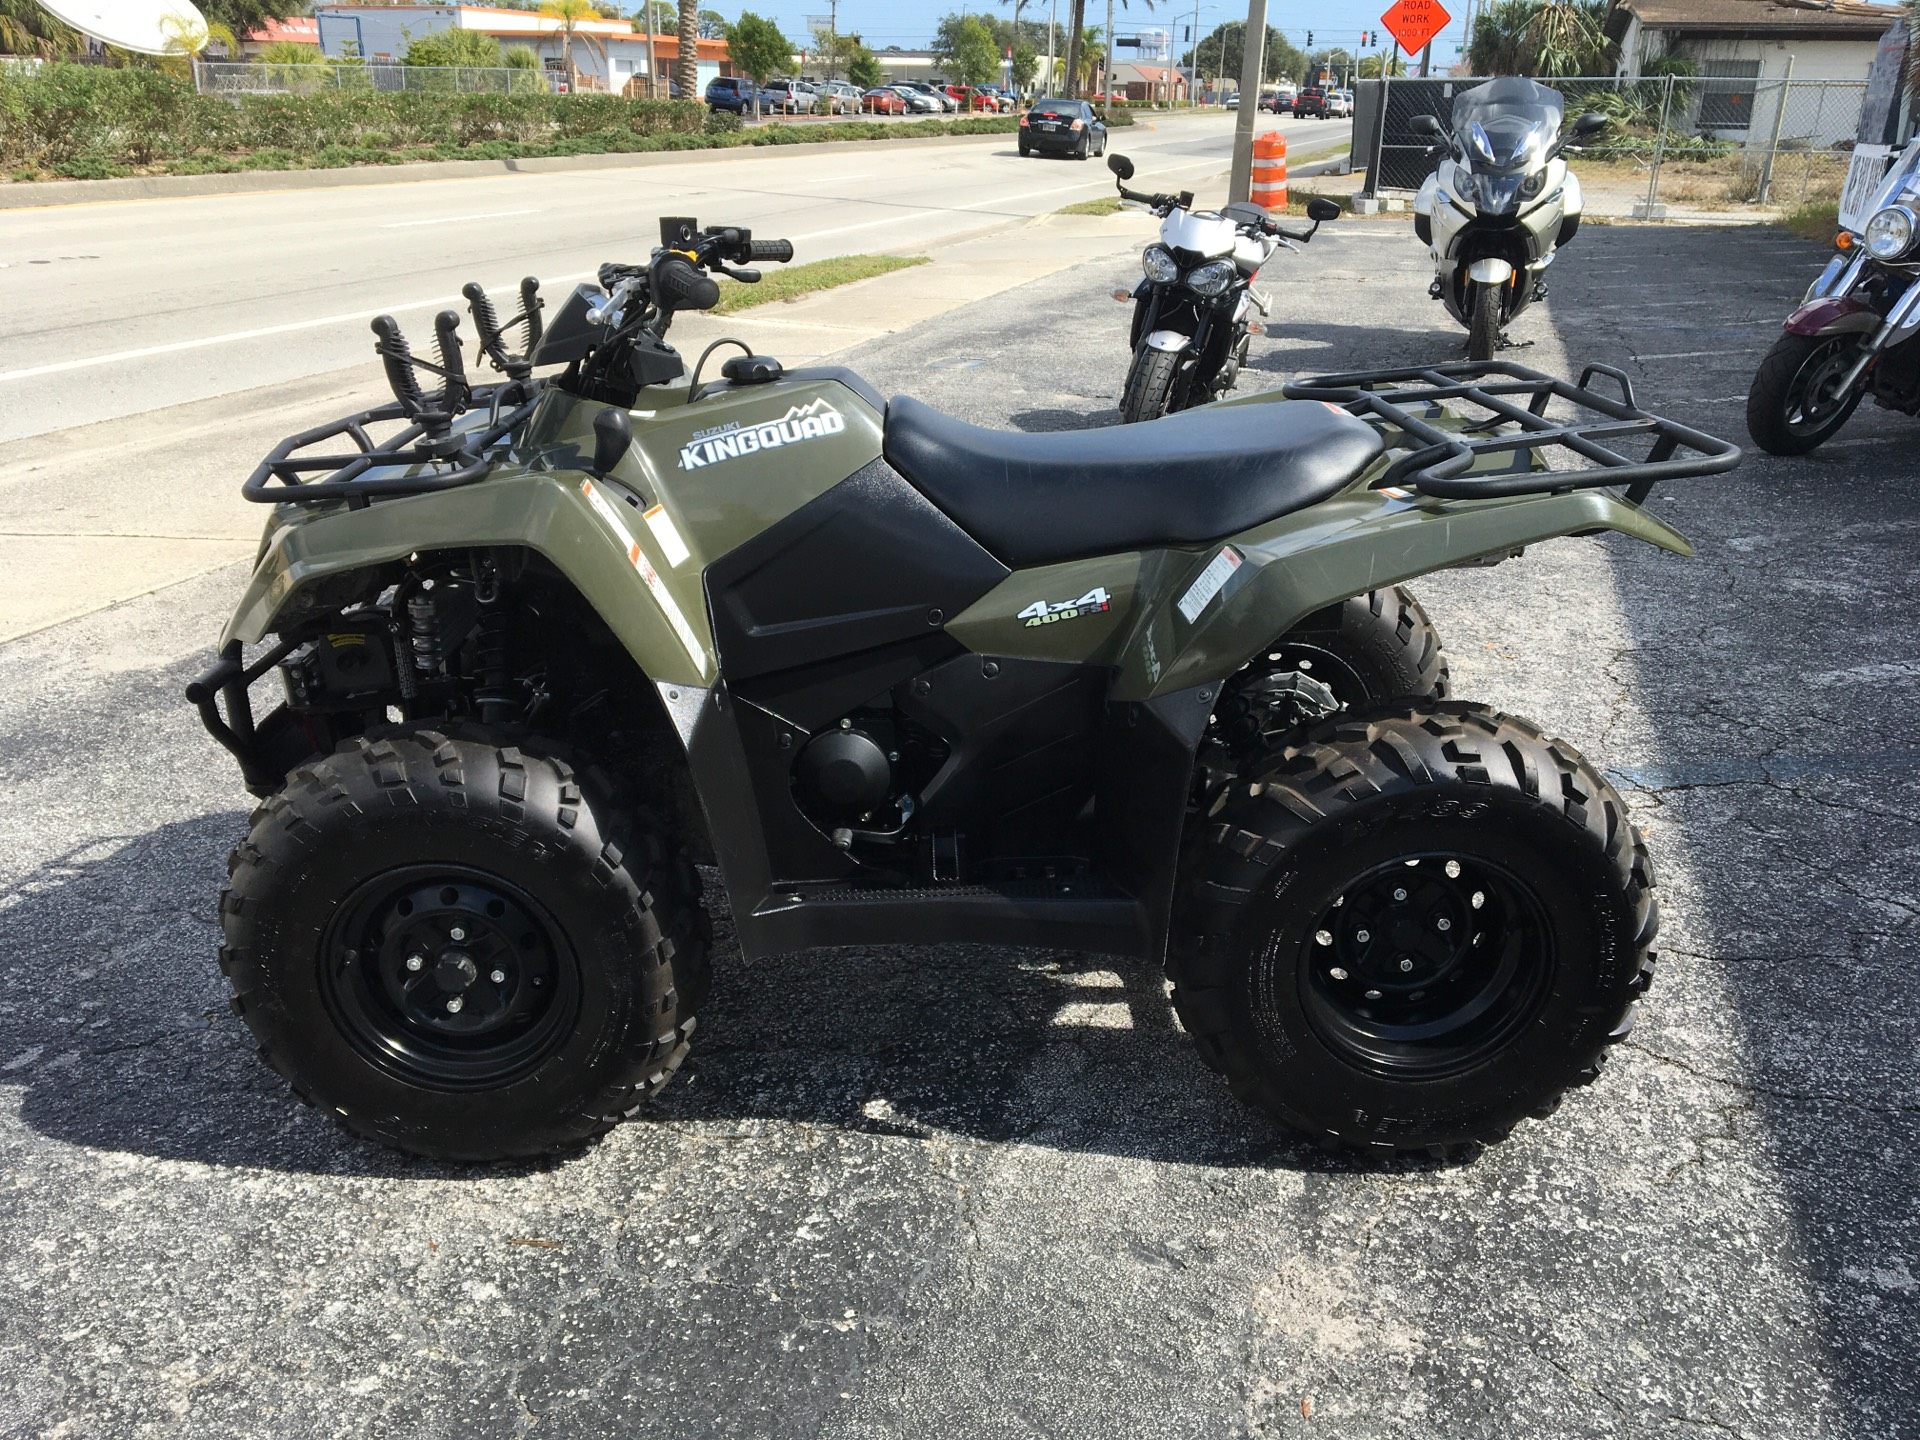 2017 SUZUKI  KINGQUAD in Cocoa, Florida - Photo 3